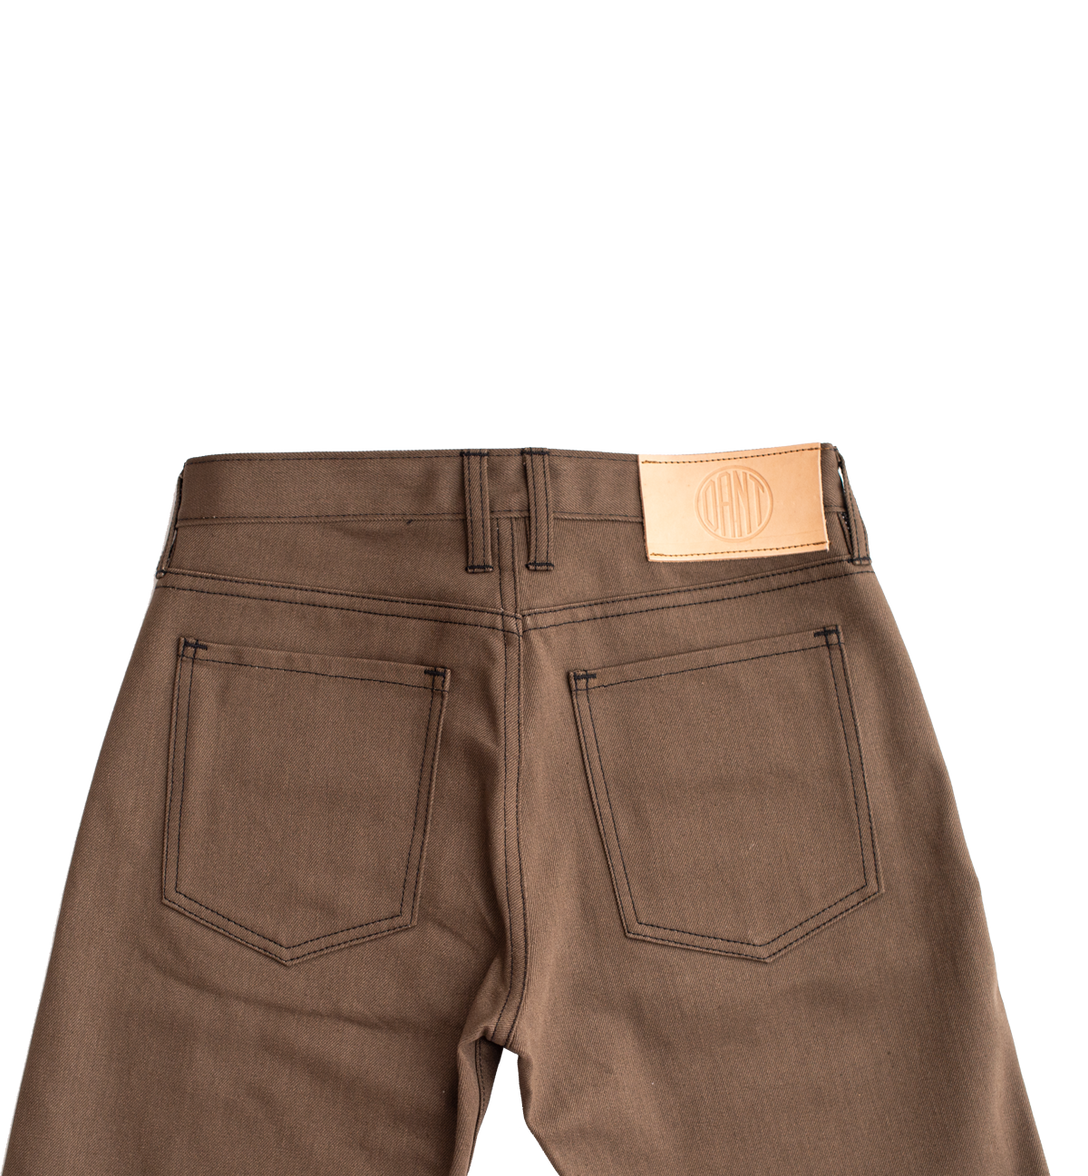 10.5oz - Experiment Saddle Brown Selvage Denim - Tailored Slim